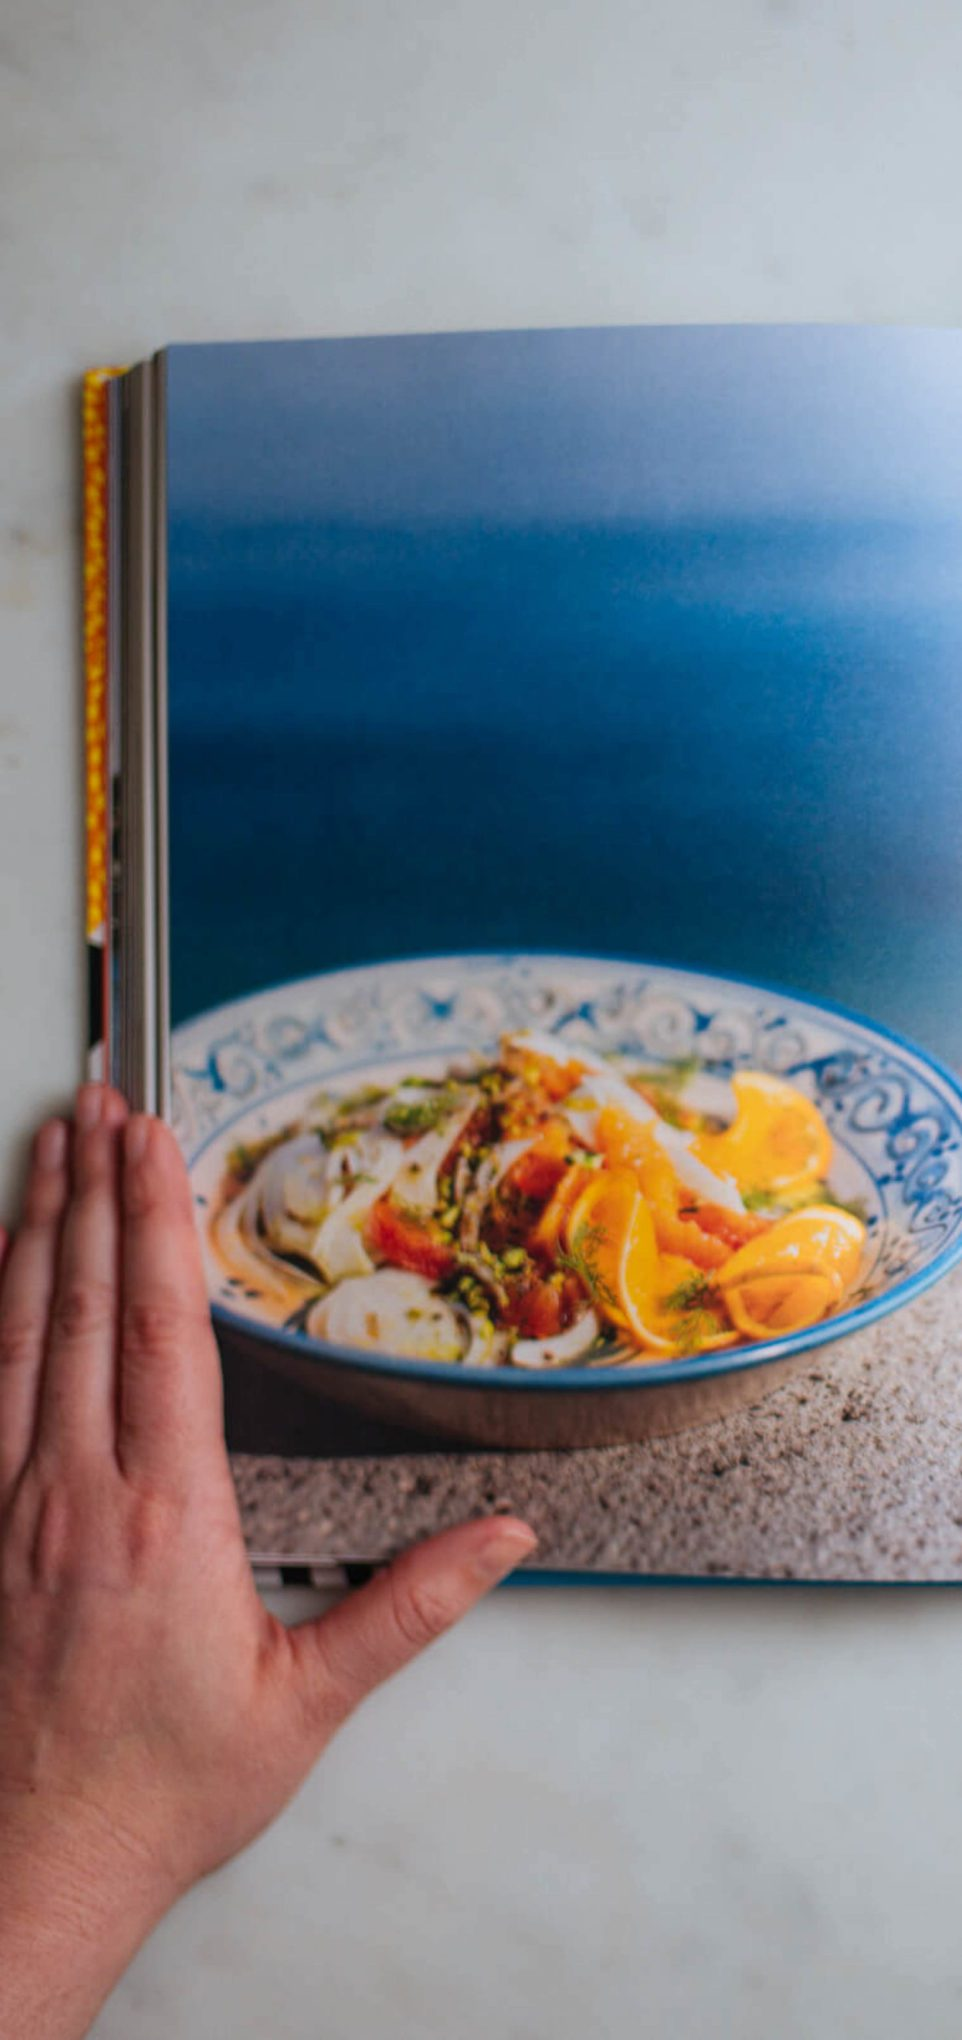 Find the best cookbooks for your kitchen. Learn how to cook and find the best recipes here. Get the entire list over on thetasteedit plus examples of their recipes.